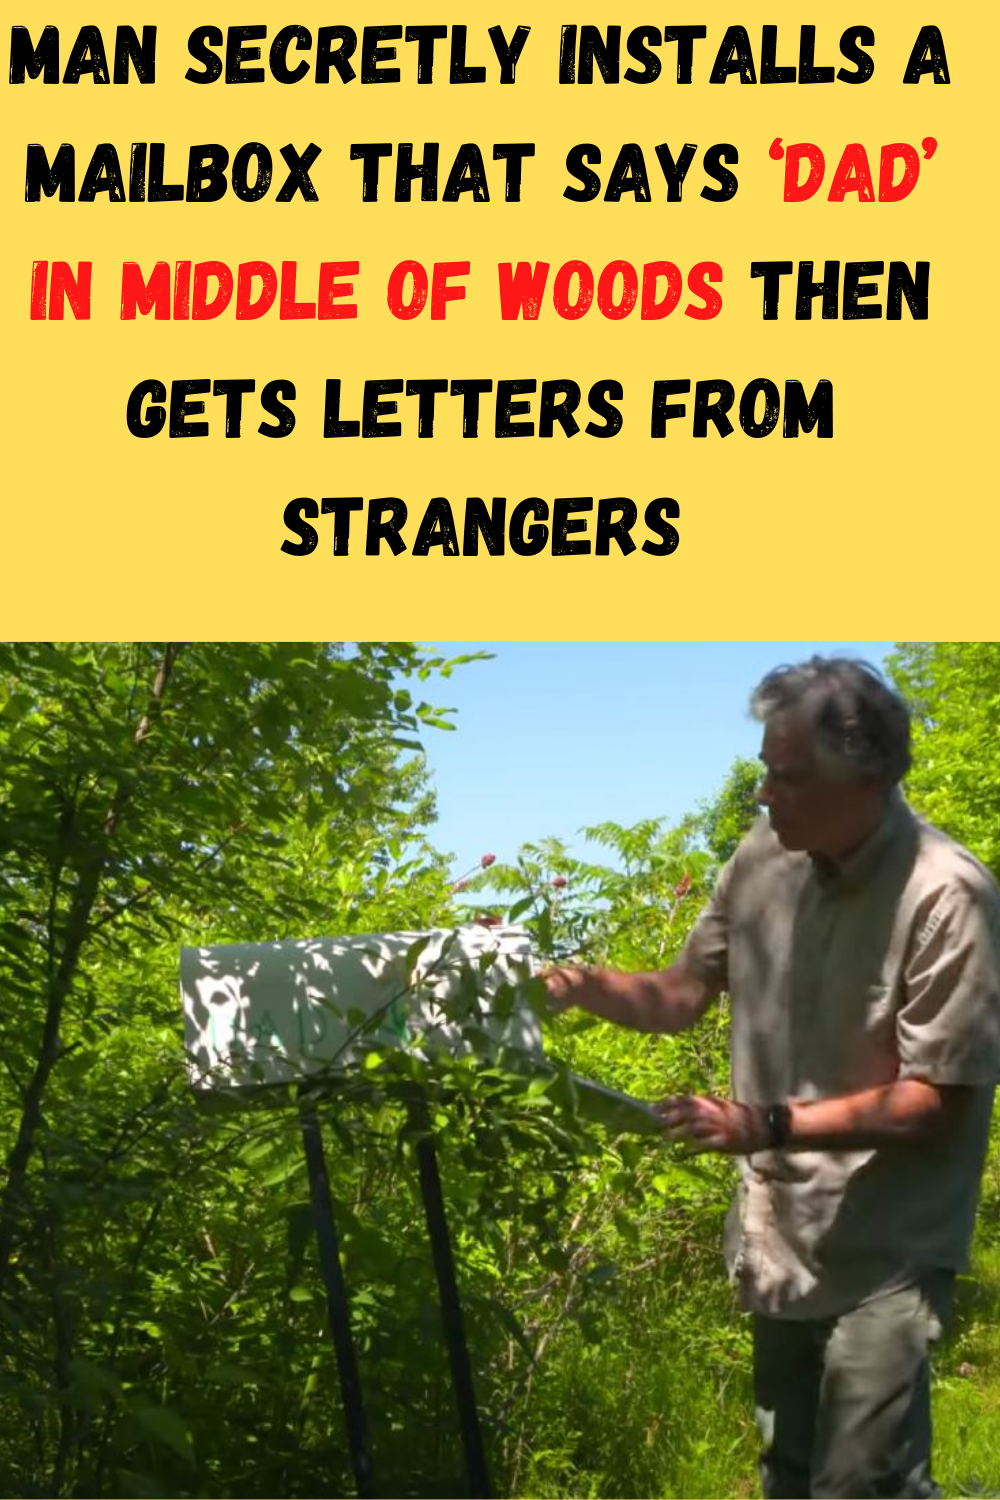 Man Secretly Installs A Mailbox That Says 'Dad' In Middle Of Woods Then Gets Letters From Strangers